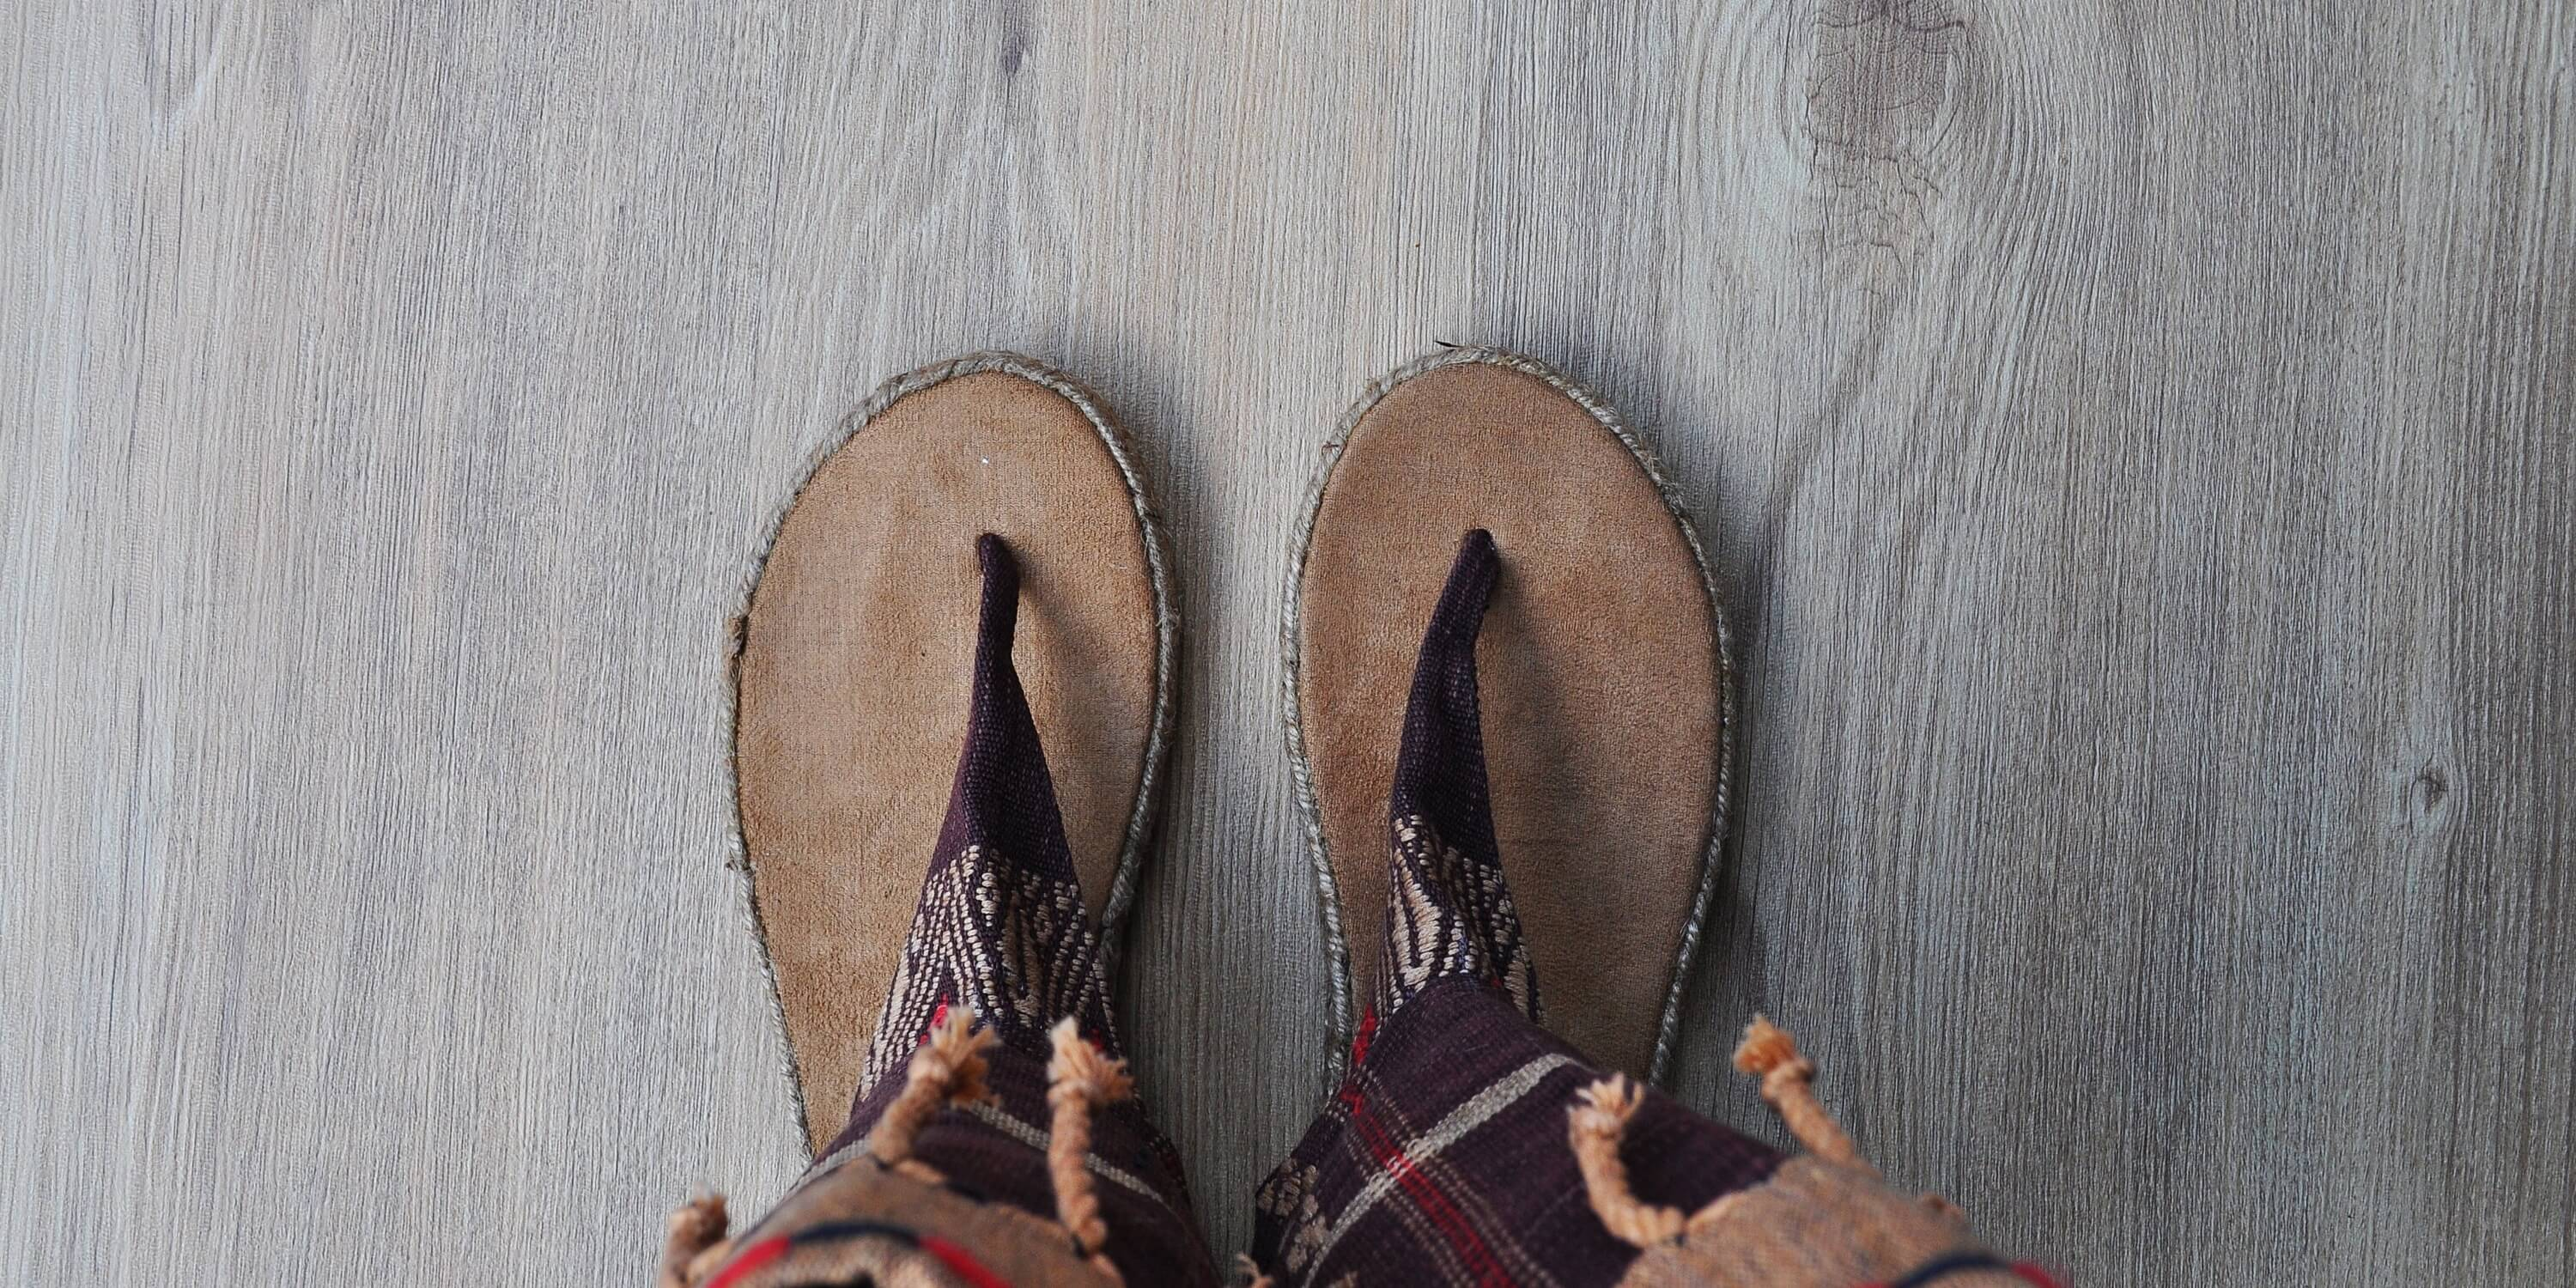 etsy-recycled-slippers-boots